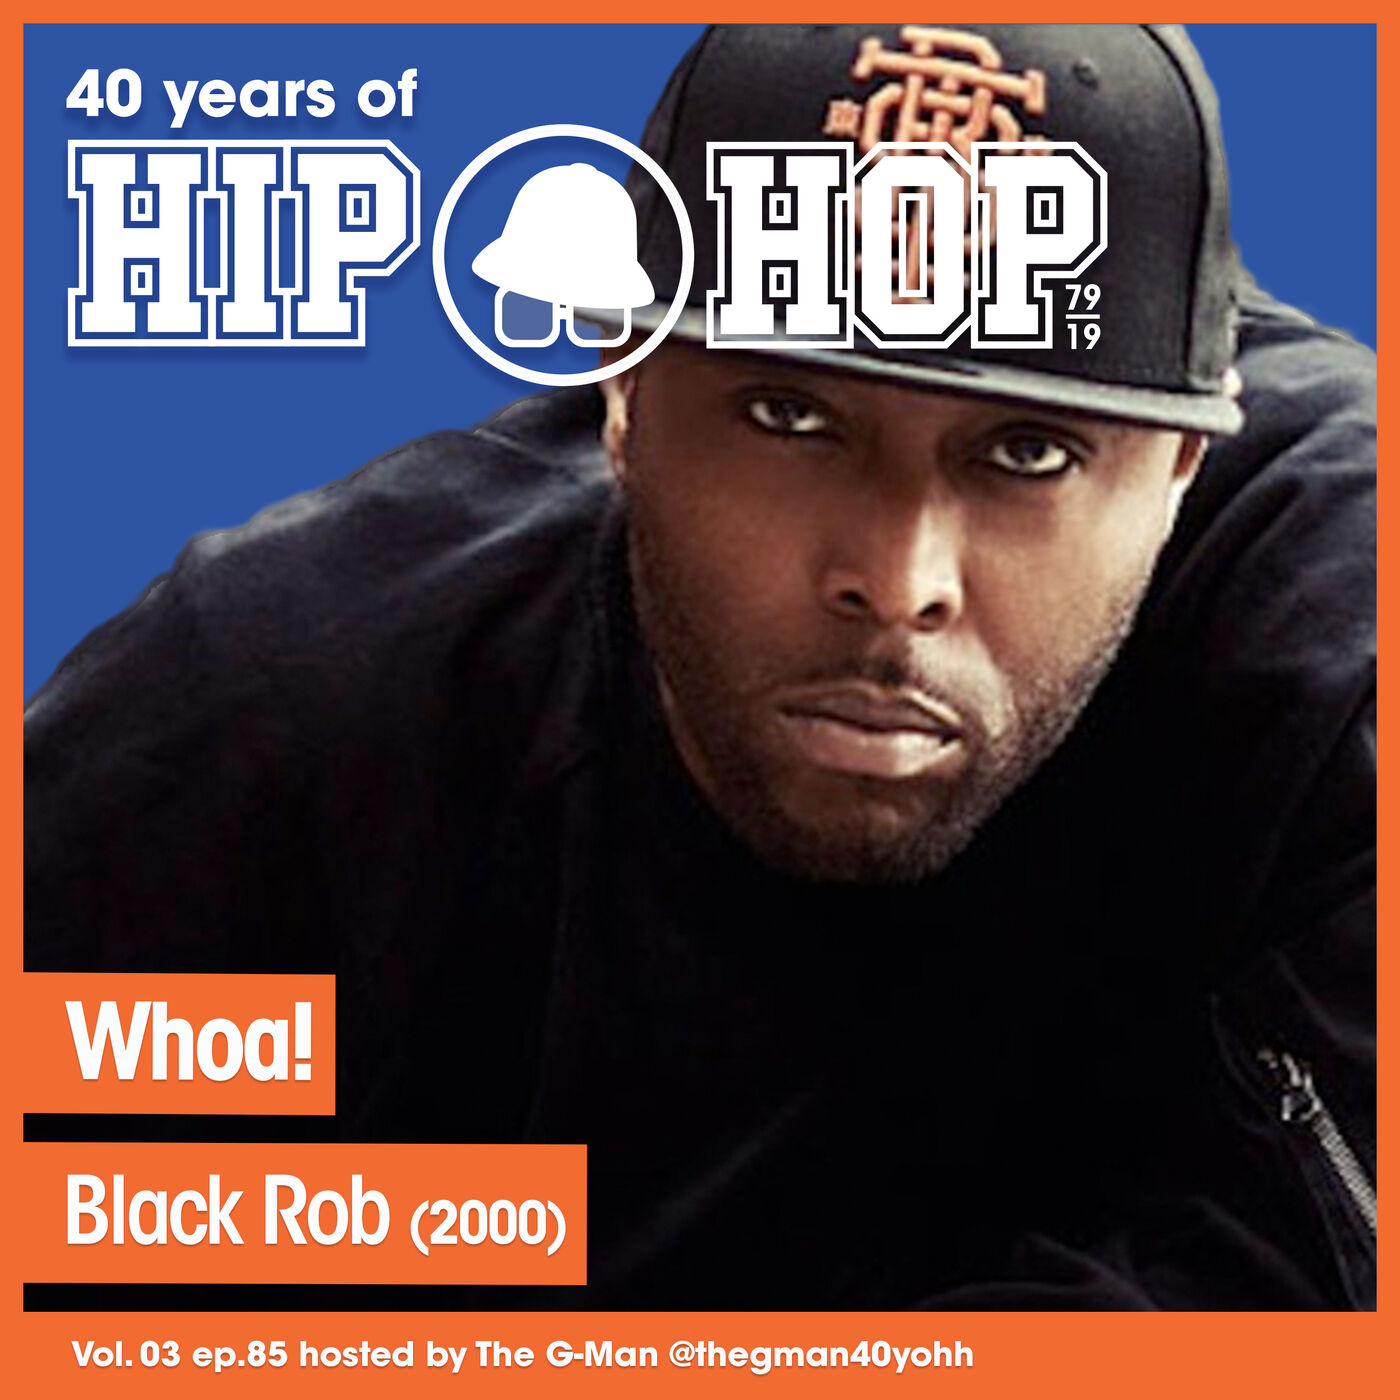 Vol.03 E85 - Whoa! by Black Rob released in 2000 - 40 Years of Hip Hop